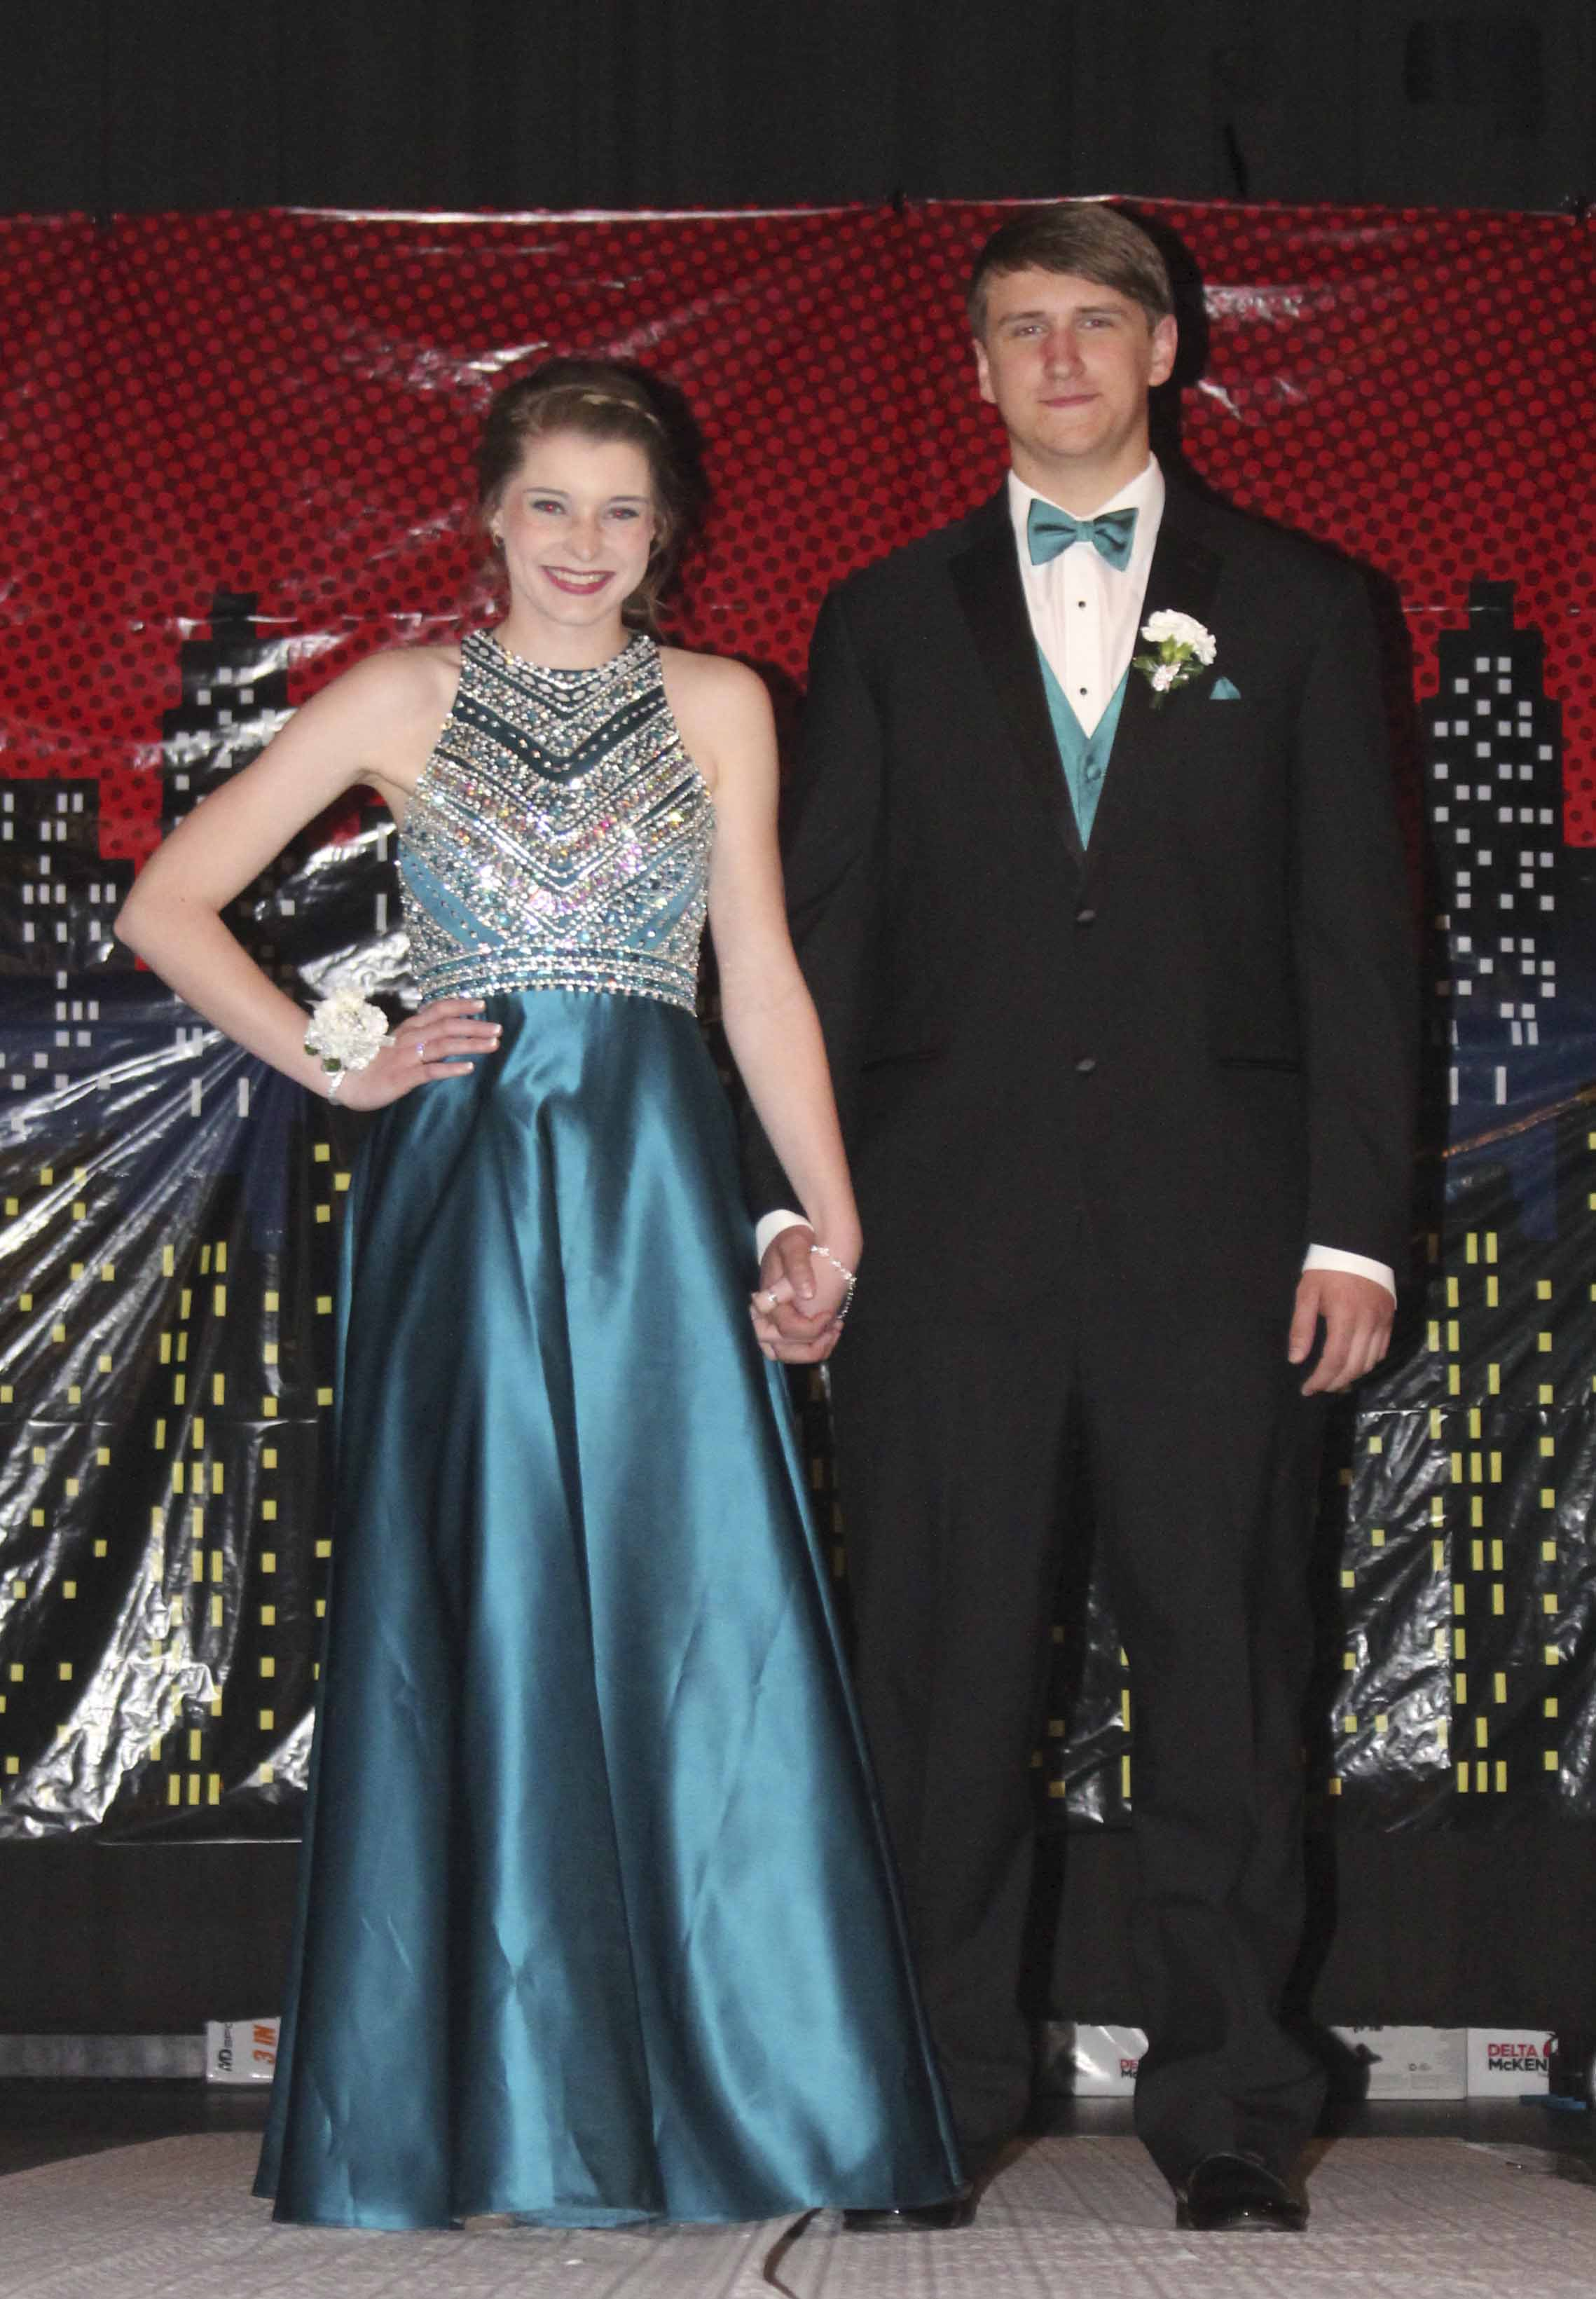 Marissa Braford (left) poses with her date, Jalen Huston.